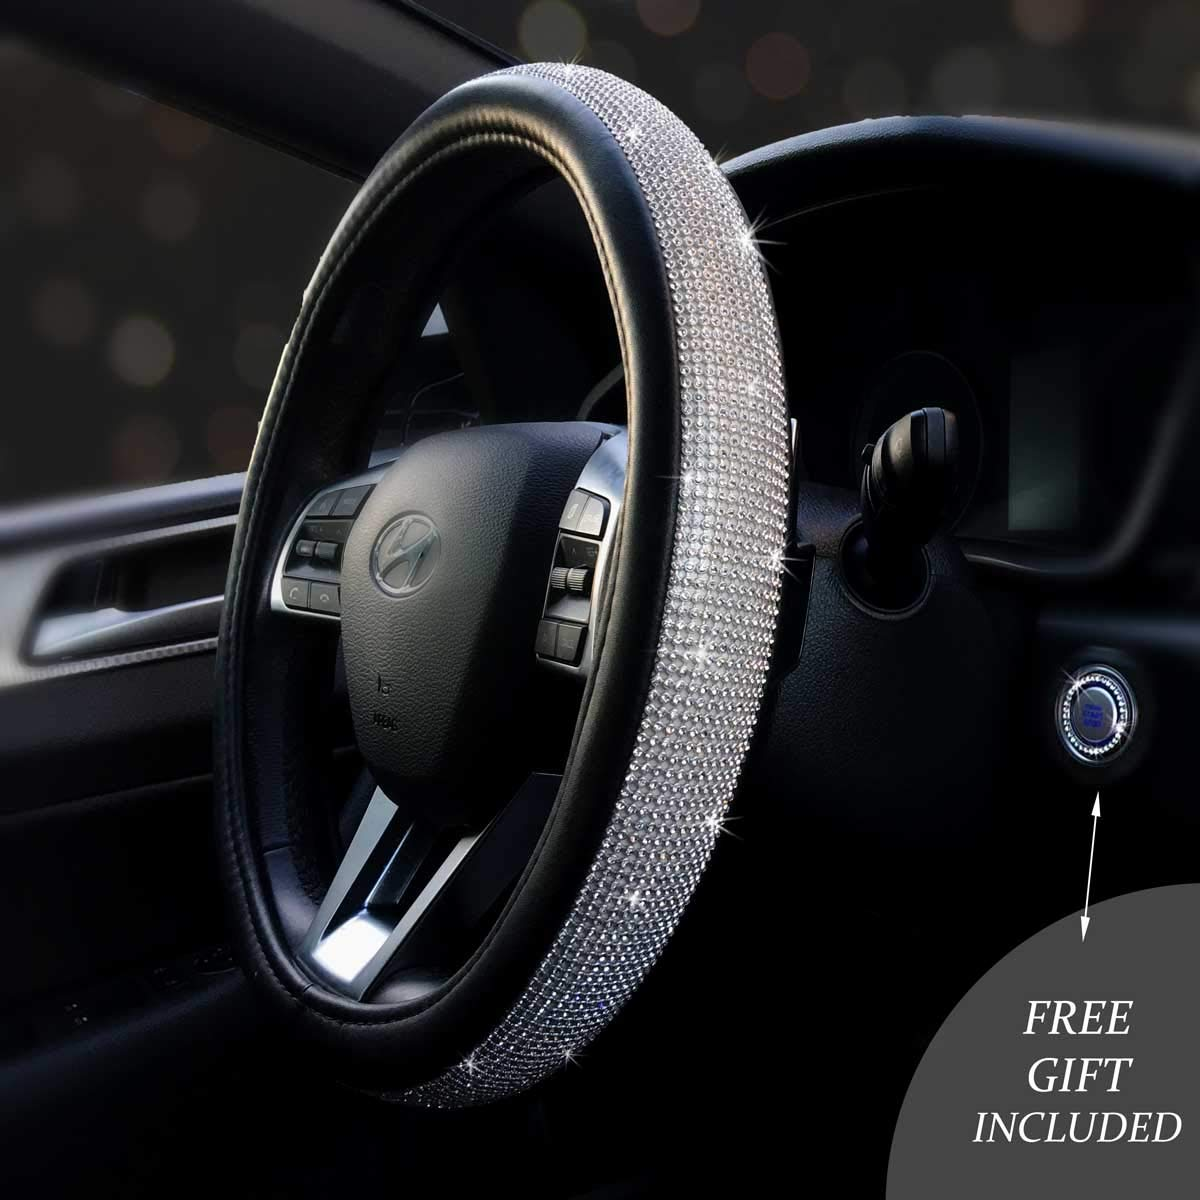 """Bling Car Decor Bling Steering Wheel Cover 15"""", Black PU Leather w/Inlaid Rhinestone Crystals + Free Car Bling Ring Button Emblem, Girly Bling Car Accessories for Women"""